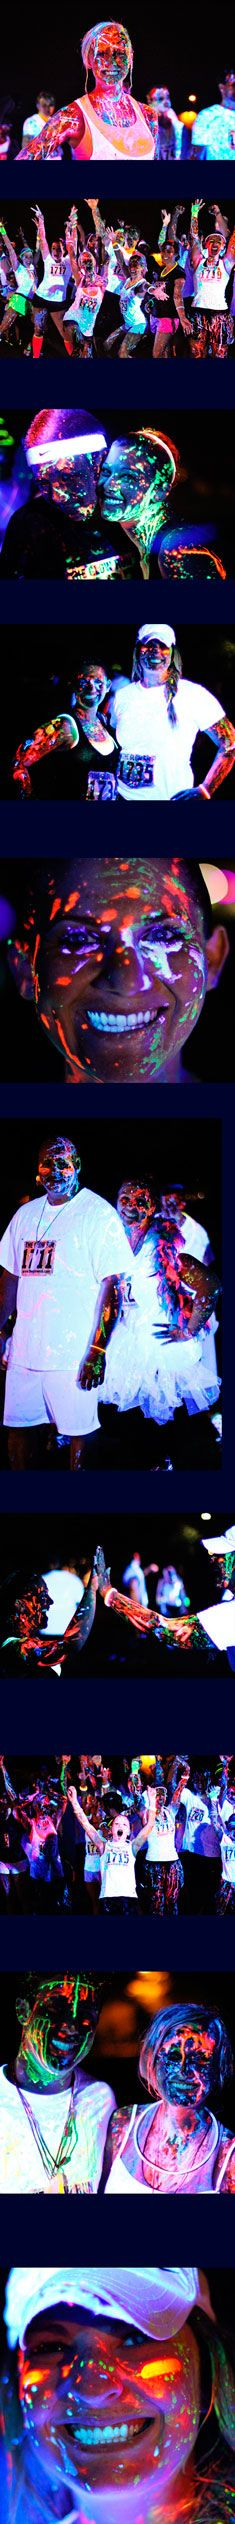 oooohh yeah! i found another run to do!!!  Neon splash dash  neon glow in the dark 5k!!!!  signing up ASAP!